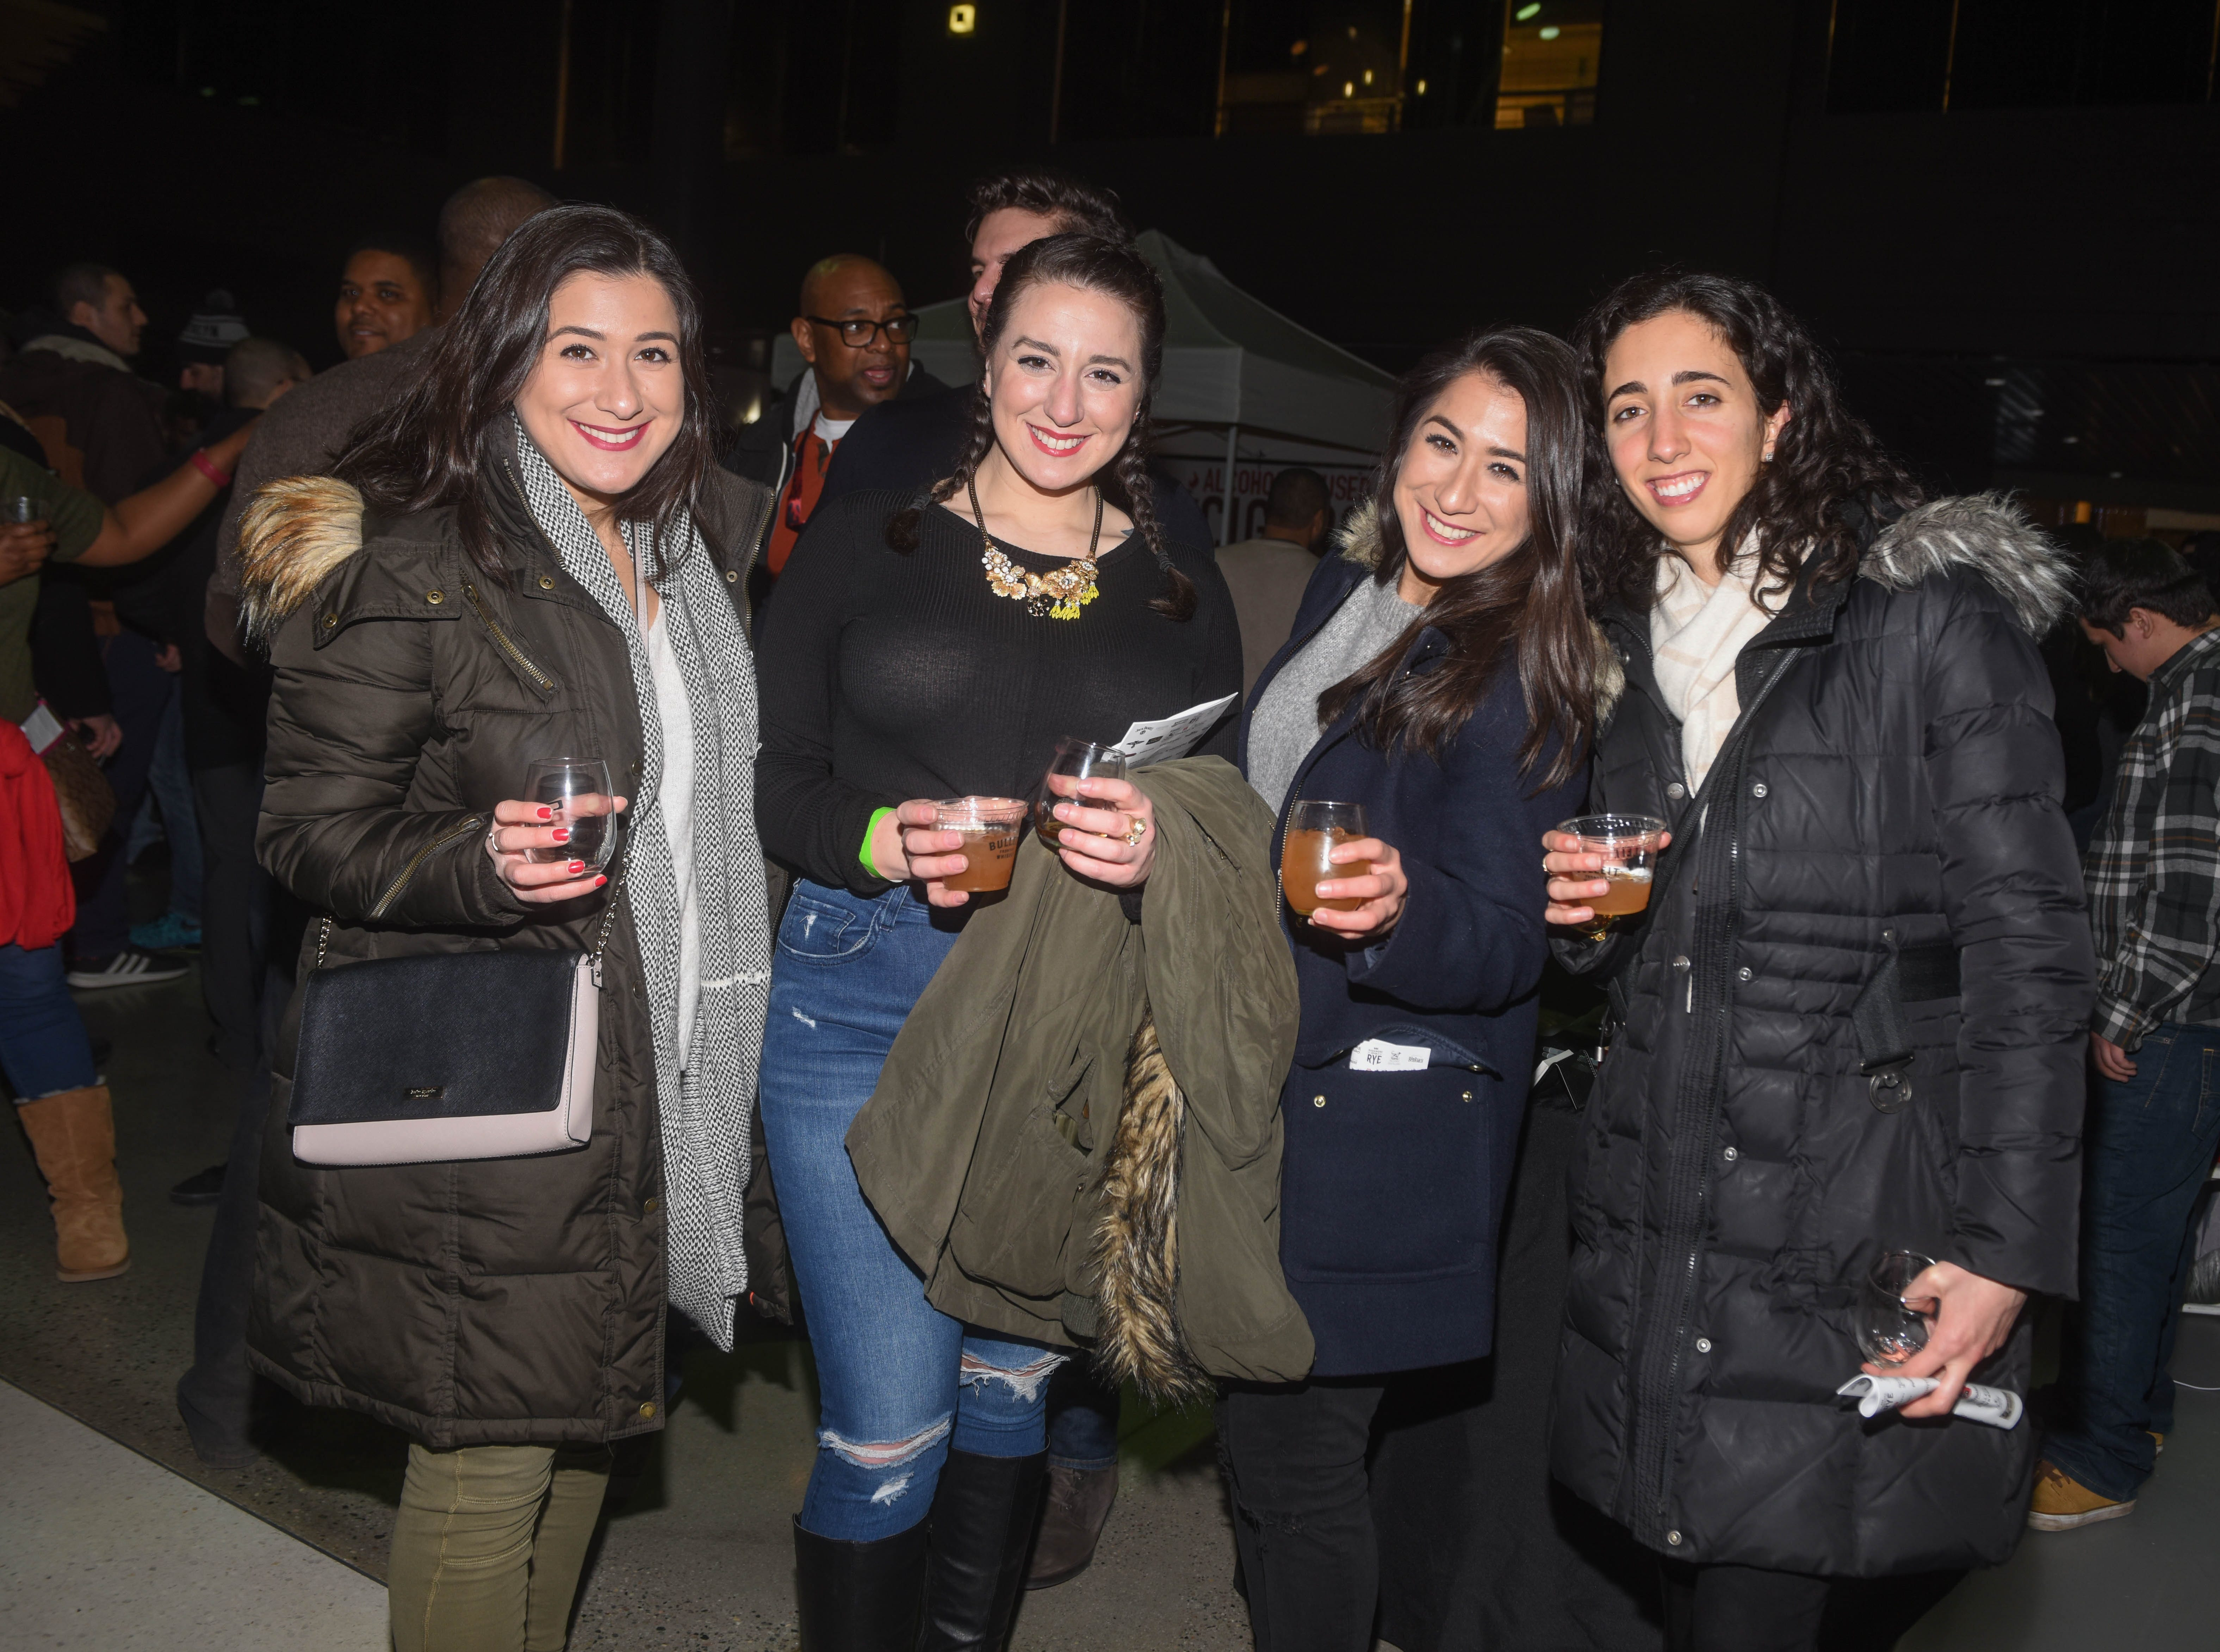 Vera Rica, Gabrielle Rica, Eva Rica and Jessica Chamoun. Jersey City Whiskey Fest was held at Harborside Atrium. The event featured over 100 styles of whiskey and spirits. 02/01/2019